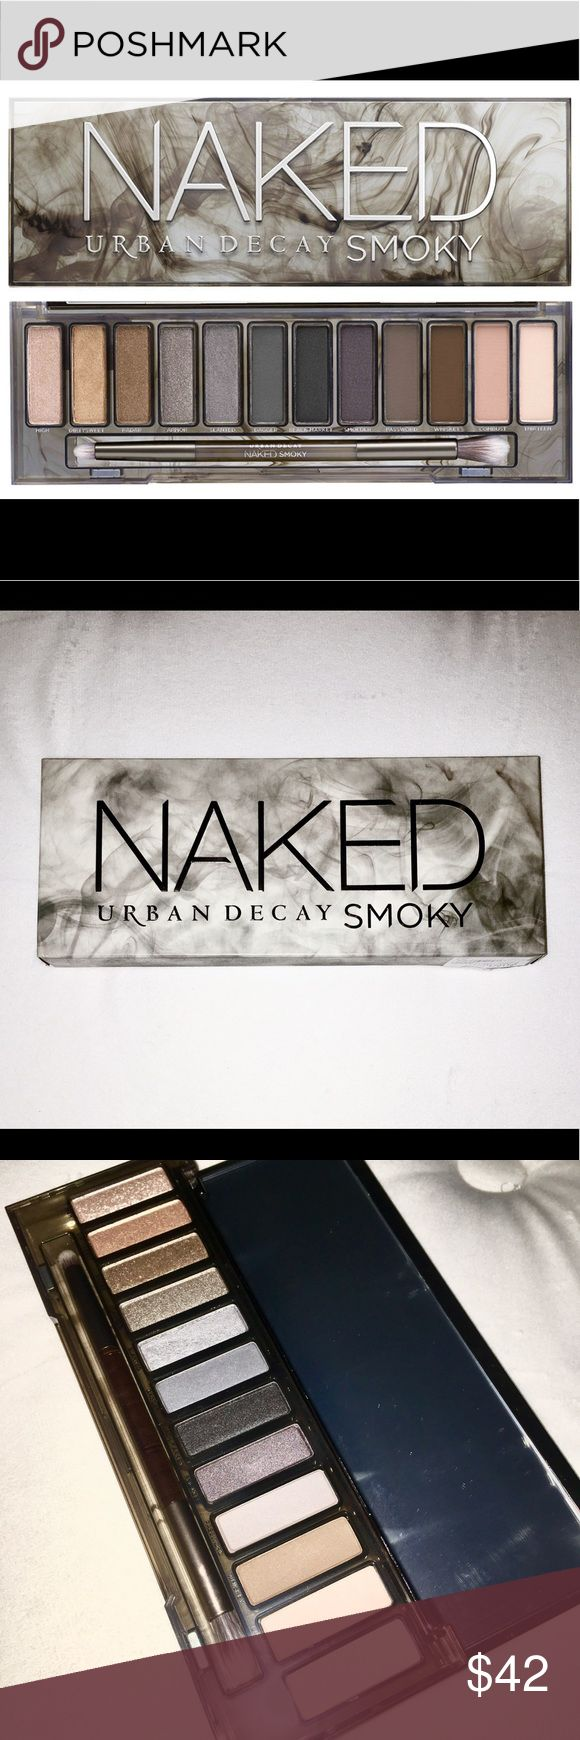 Urban Decay Naked Smoky Palette NWT! Brand new, opened once (to show shadows inside). Pictures taken with an iPhone 6s and flash, I tried to get the colors as close to real as possible.  This is the fourth beautiful palette in UD's Naked collection, featuring a variety of cool-toned shades perfect for creating any smoky look you can dream of.   100% cruelty free. Fill Weight: Eyeshadows: 12 x 1.3 g POIDS NET/NET WT. 12 x 0.05 oz Urban Decay Makeup Eyeshadow